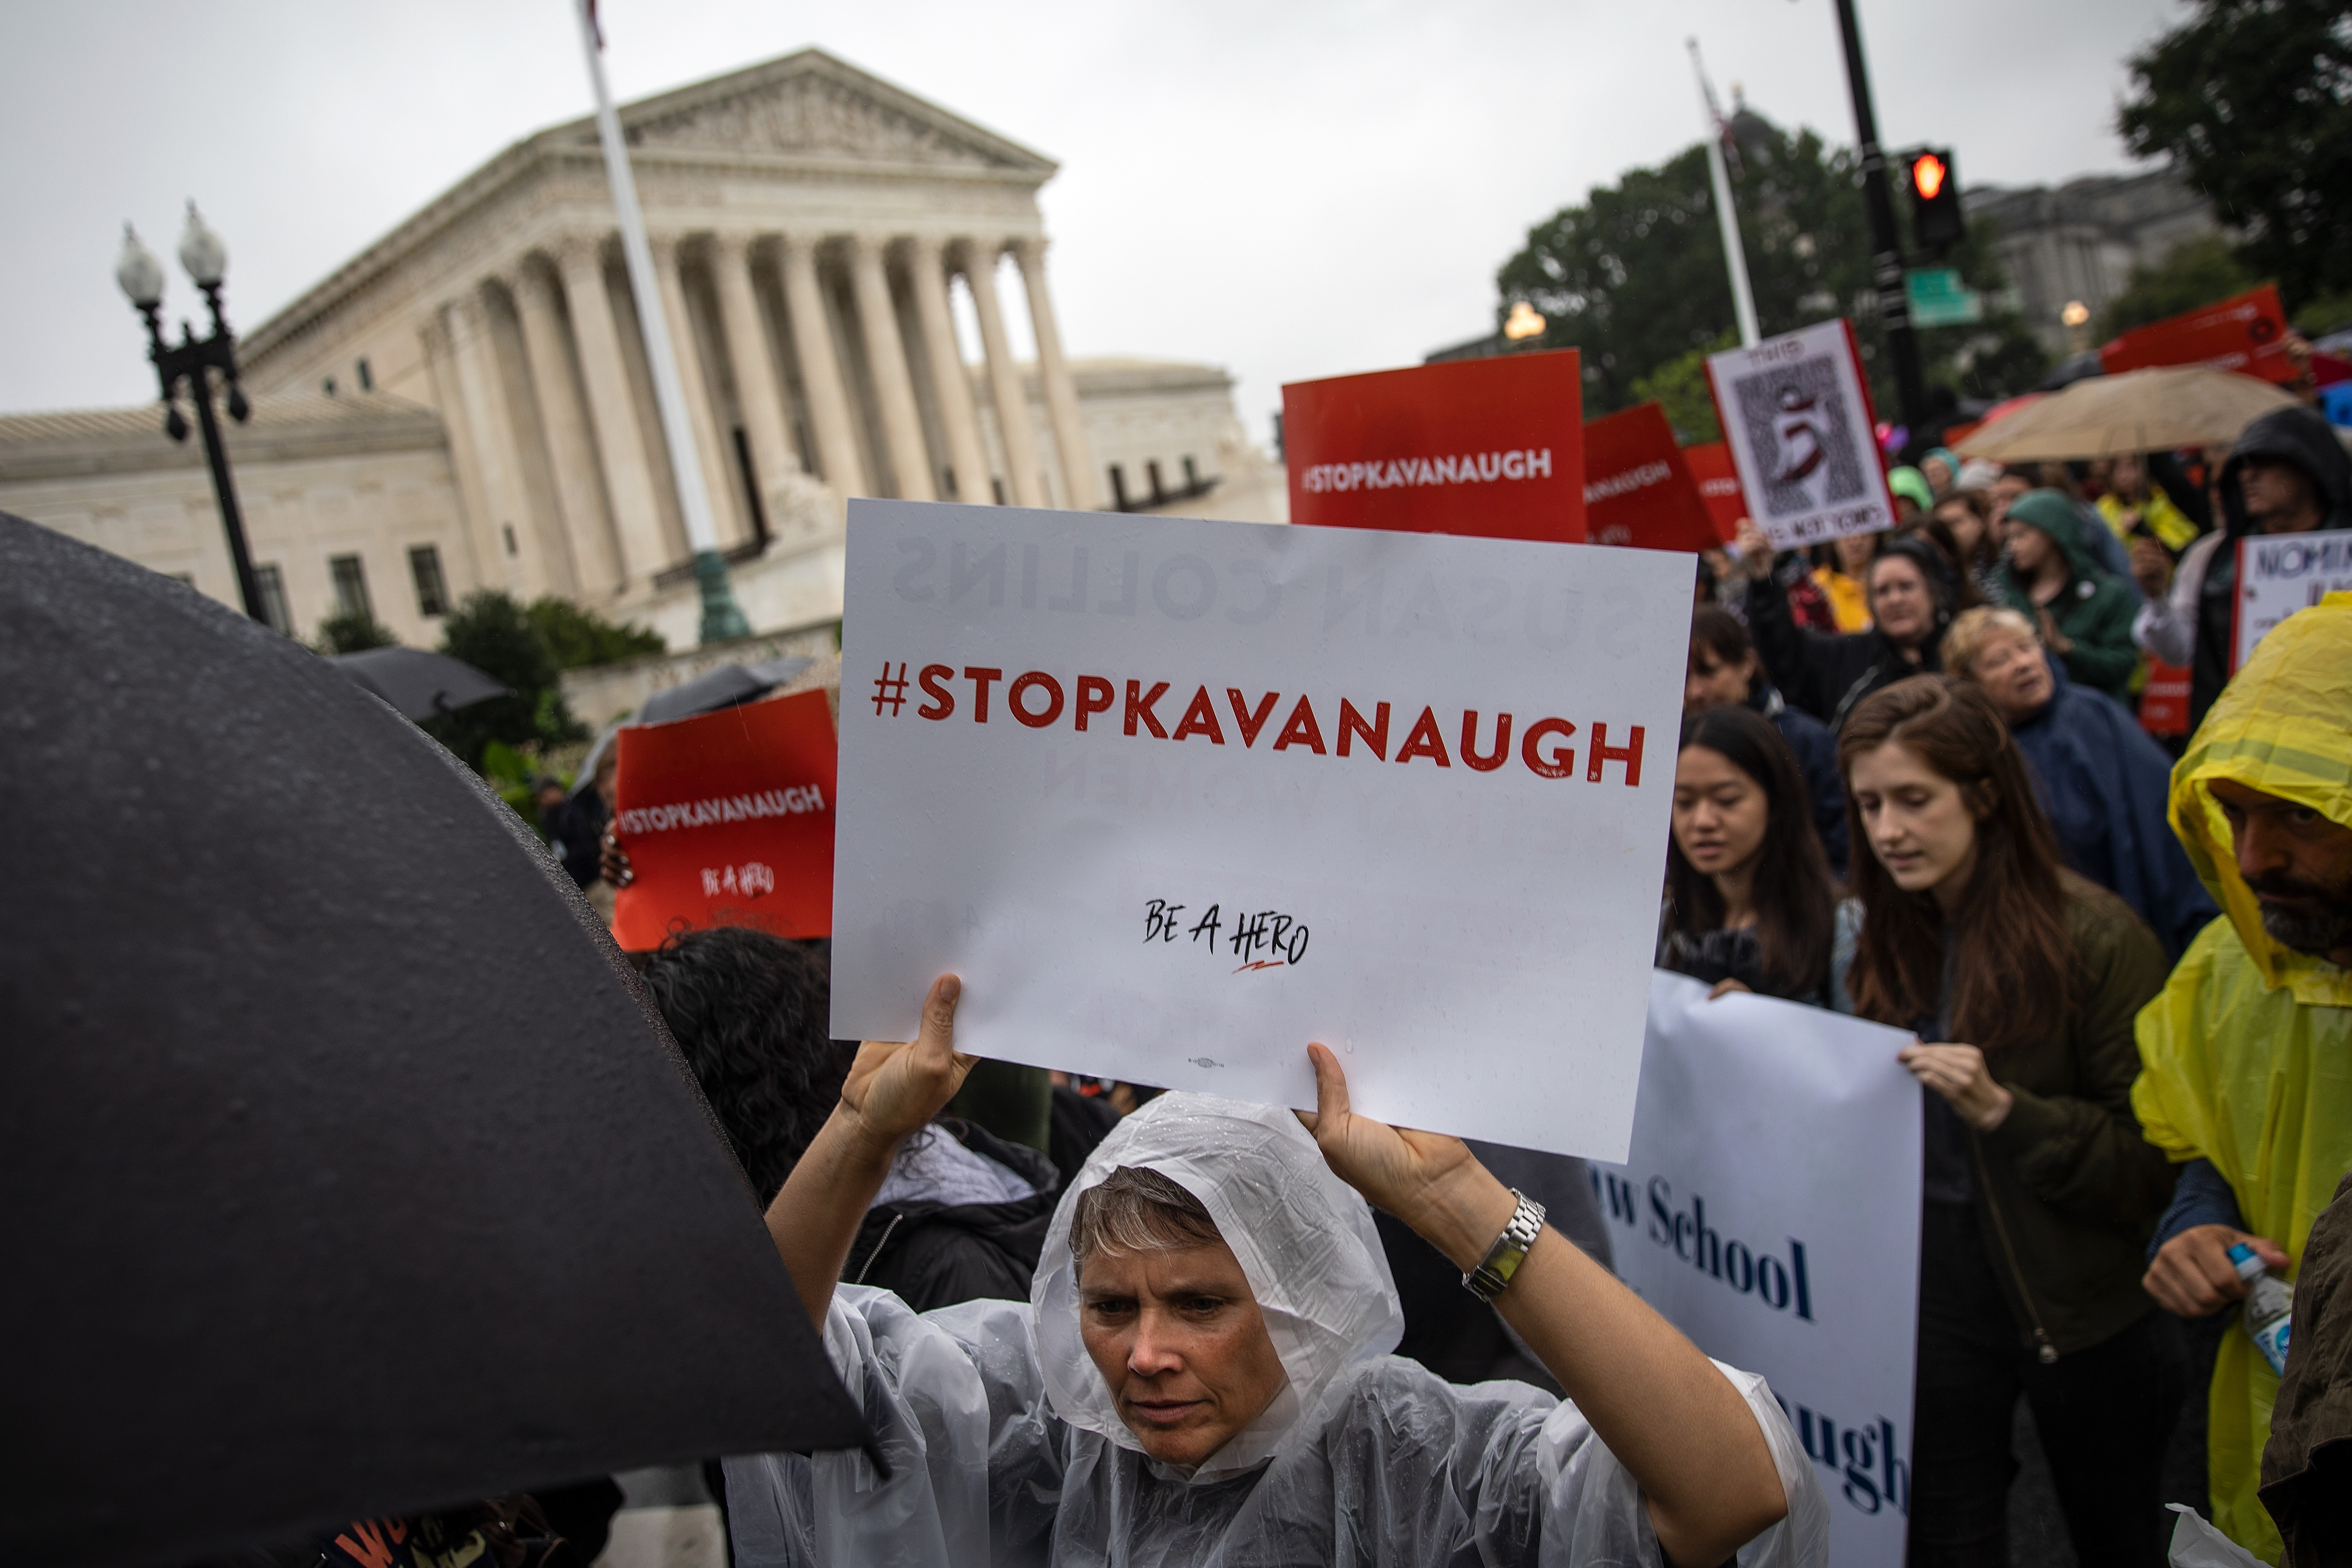 WASHINGTON, DC - SEPTEMBER 24: Protestors rally against Supreme Court nominee Judge Brett Kavanaugh as they make their way from the Supreme Court to the Hart Senate Office Building on Capitol Hill, September 24, 2018 in Washington, DC. Christine Blasey Ford, who has accused Kavanaugh of sexual assault, has agreed to testify before the Senate Judiciary Committee on Thursday. (Photo by Drew Angerer/Getty Images)